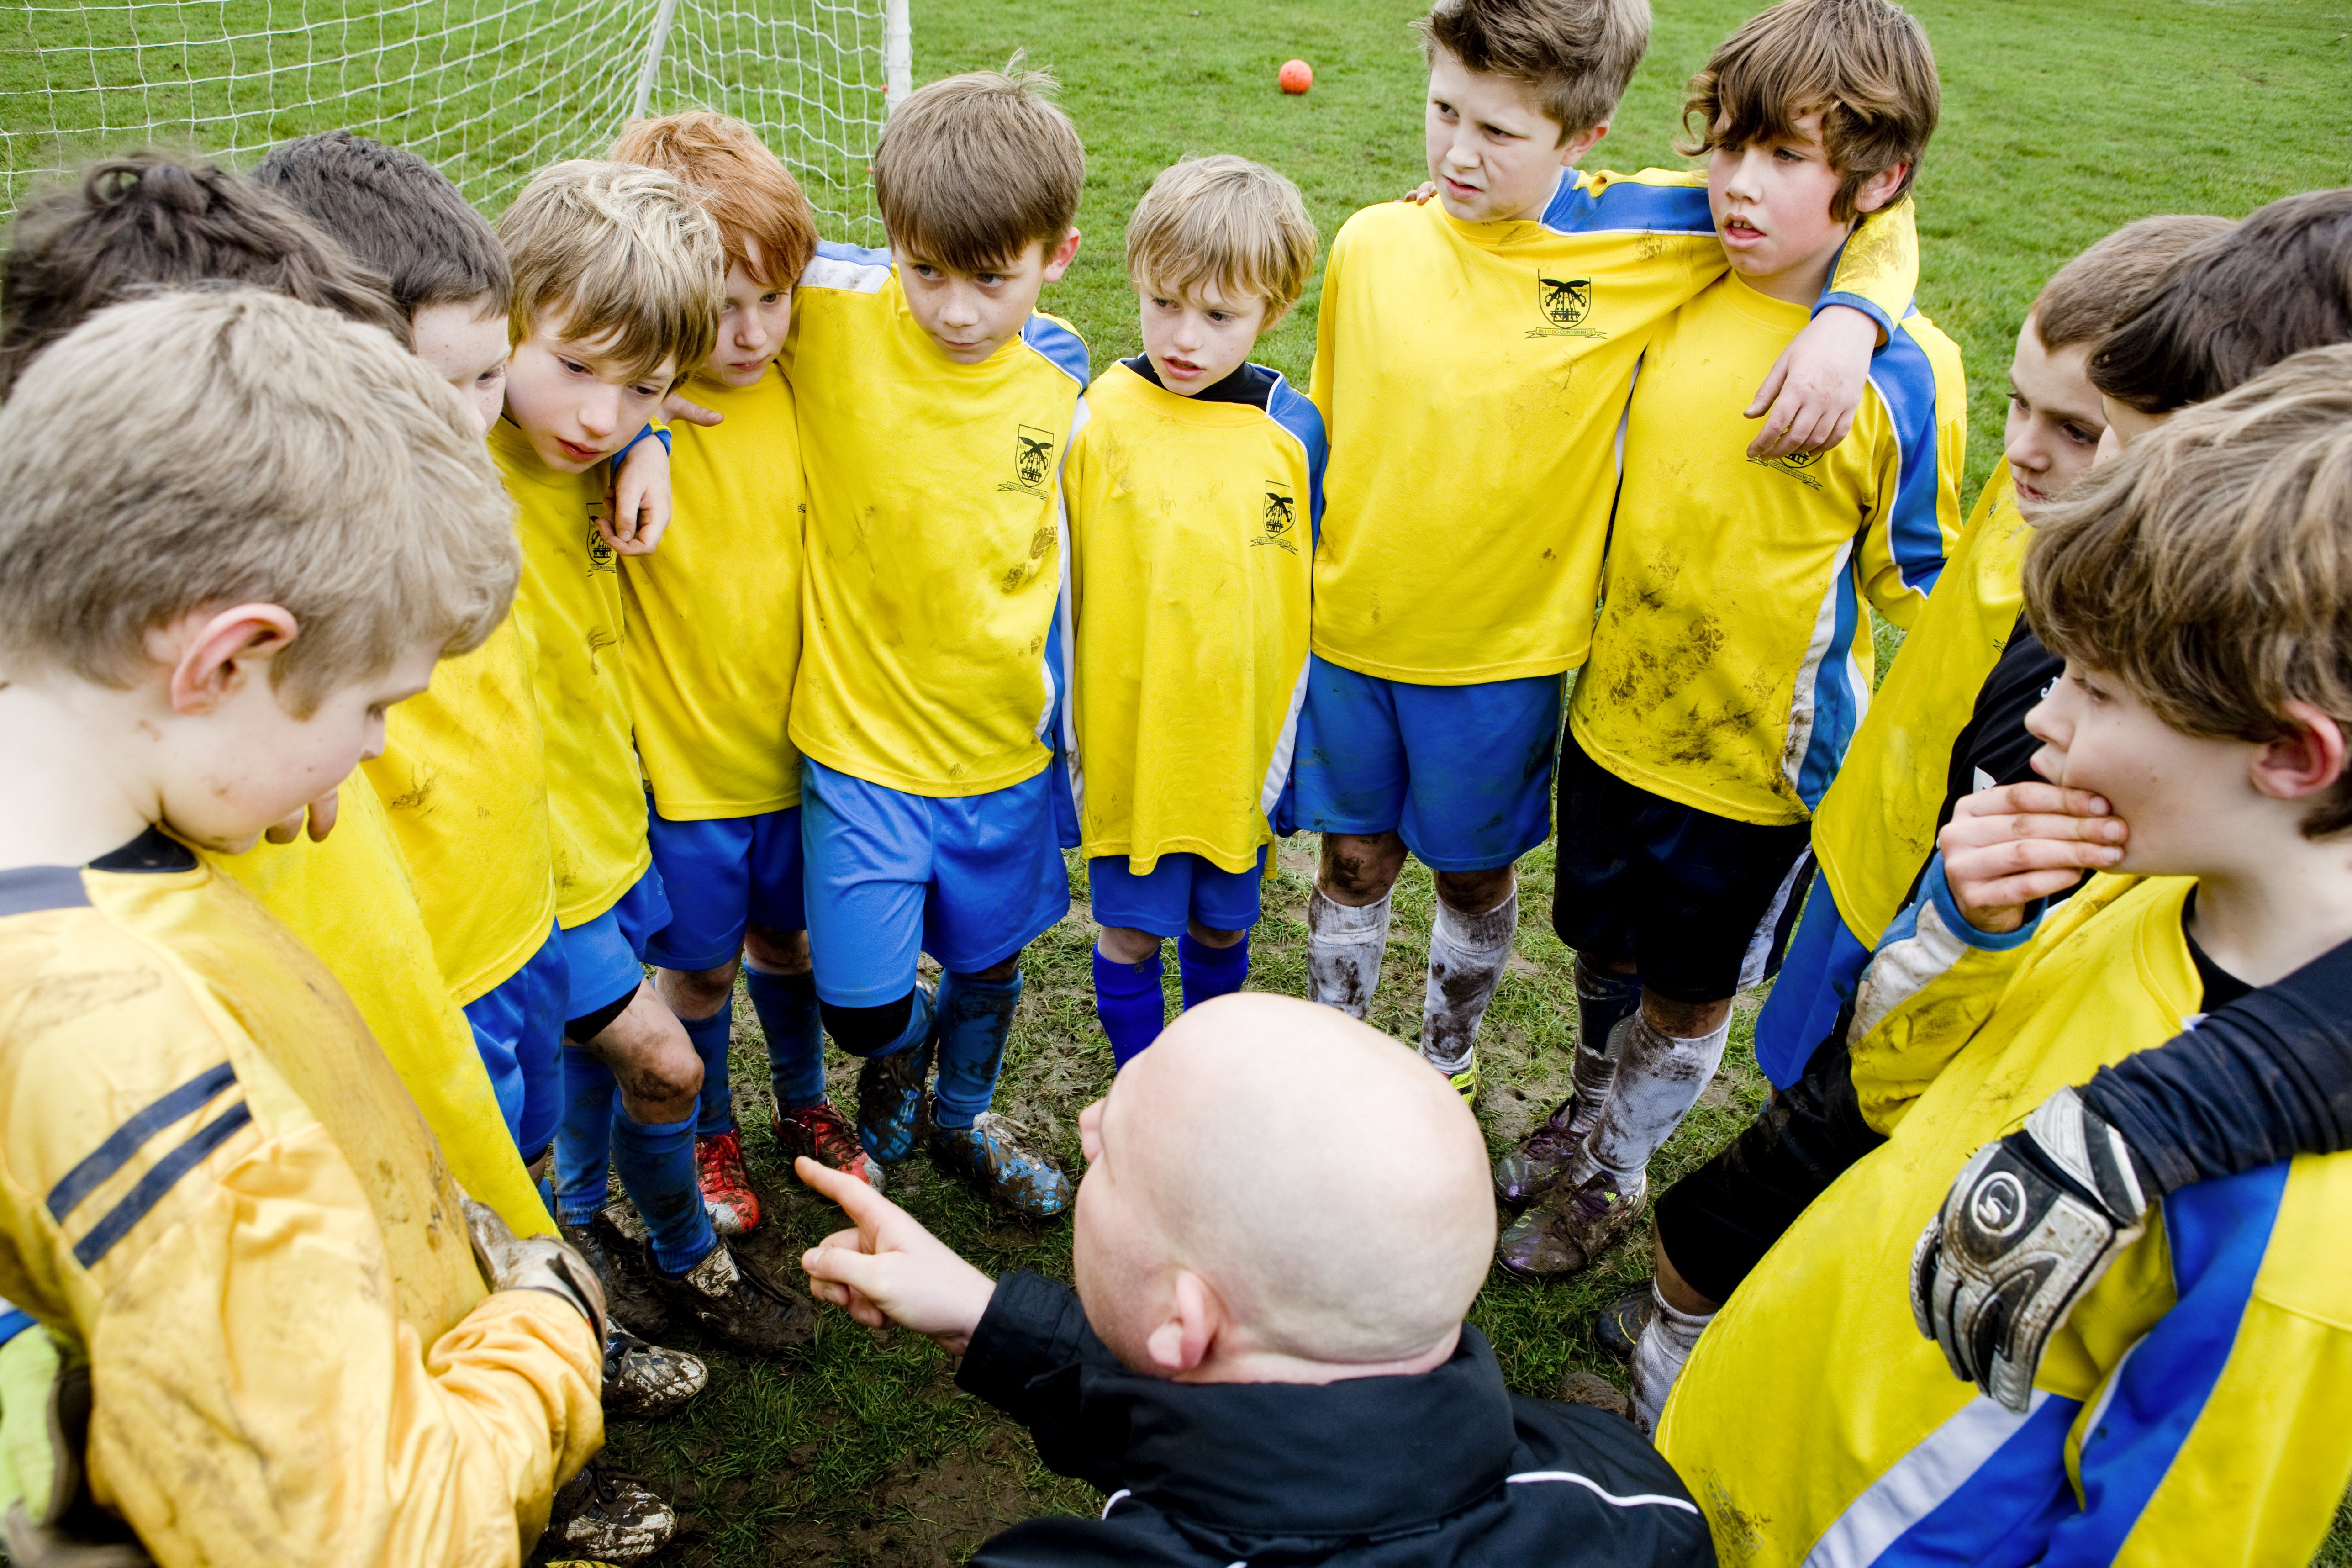 Photo of a football team talk with a coach before the game | Photo: Getty Images